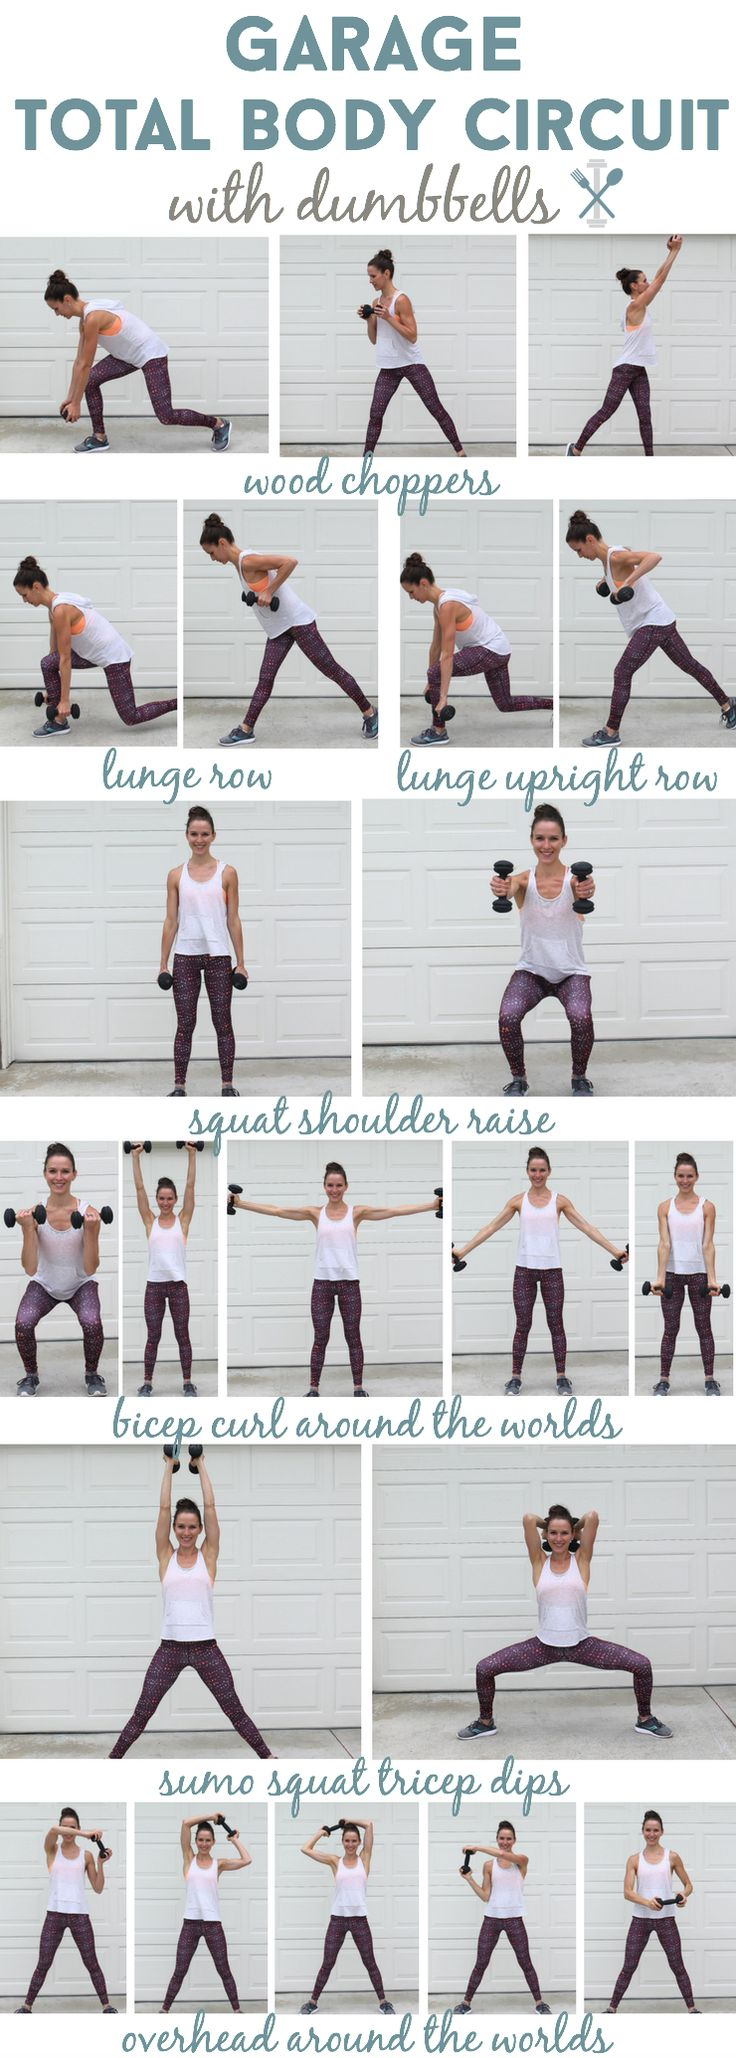 This total body workout with dumbbells is one you can complete at home in your garage, or if you hit the gym! All over toning and sculpting